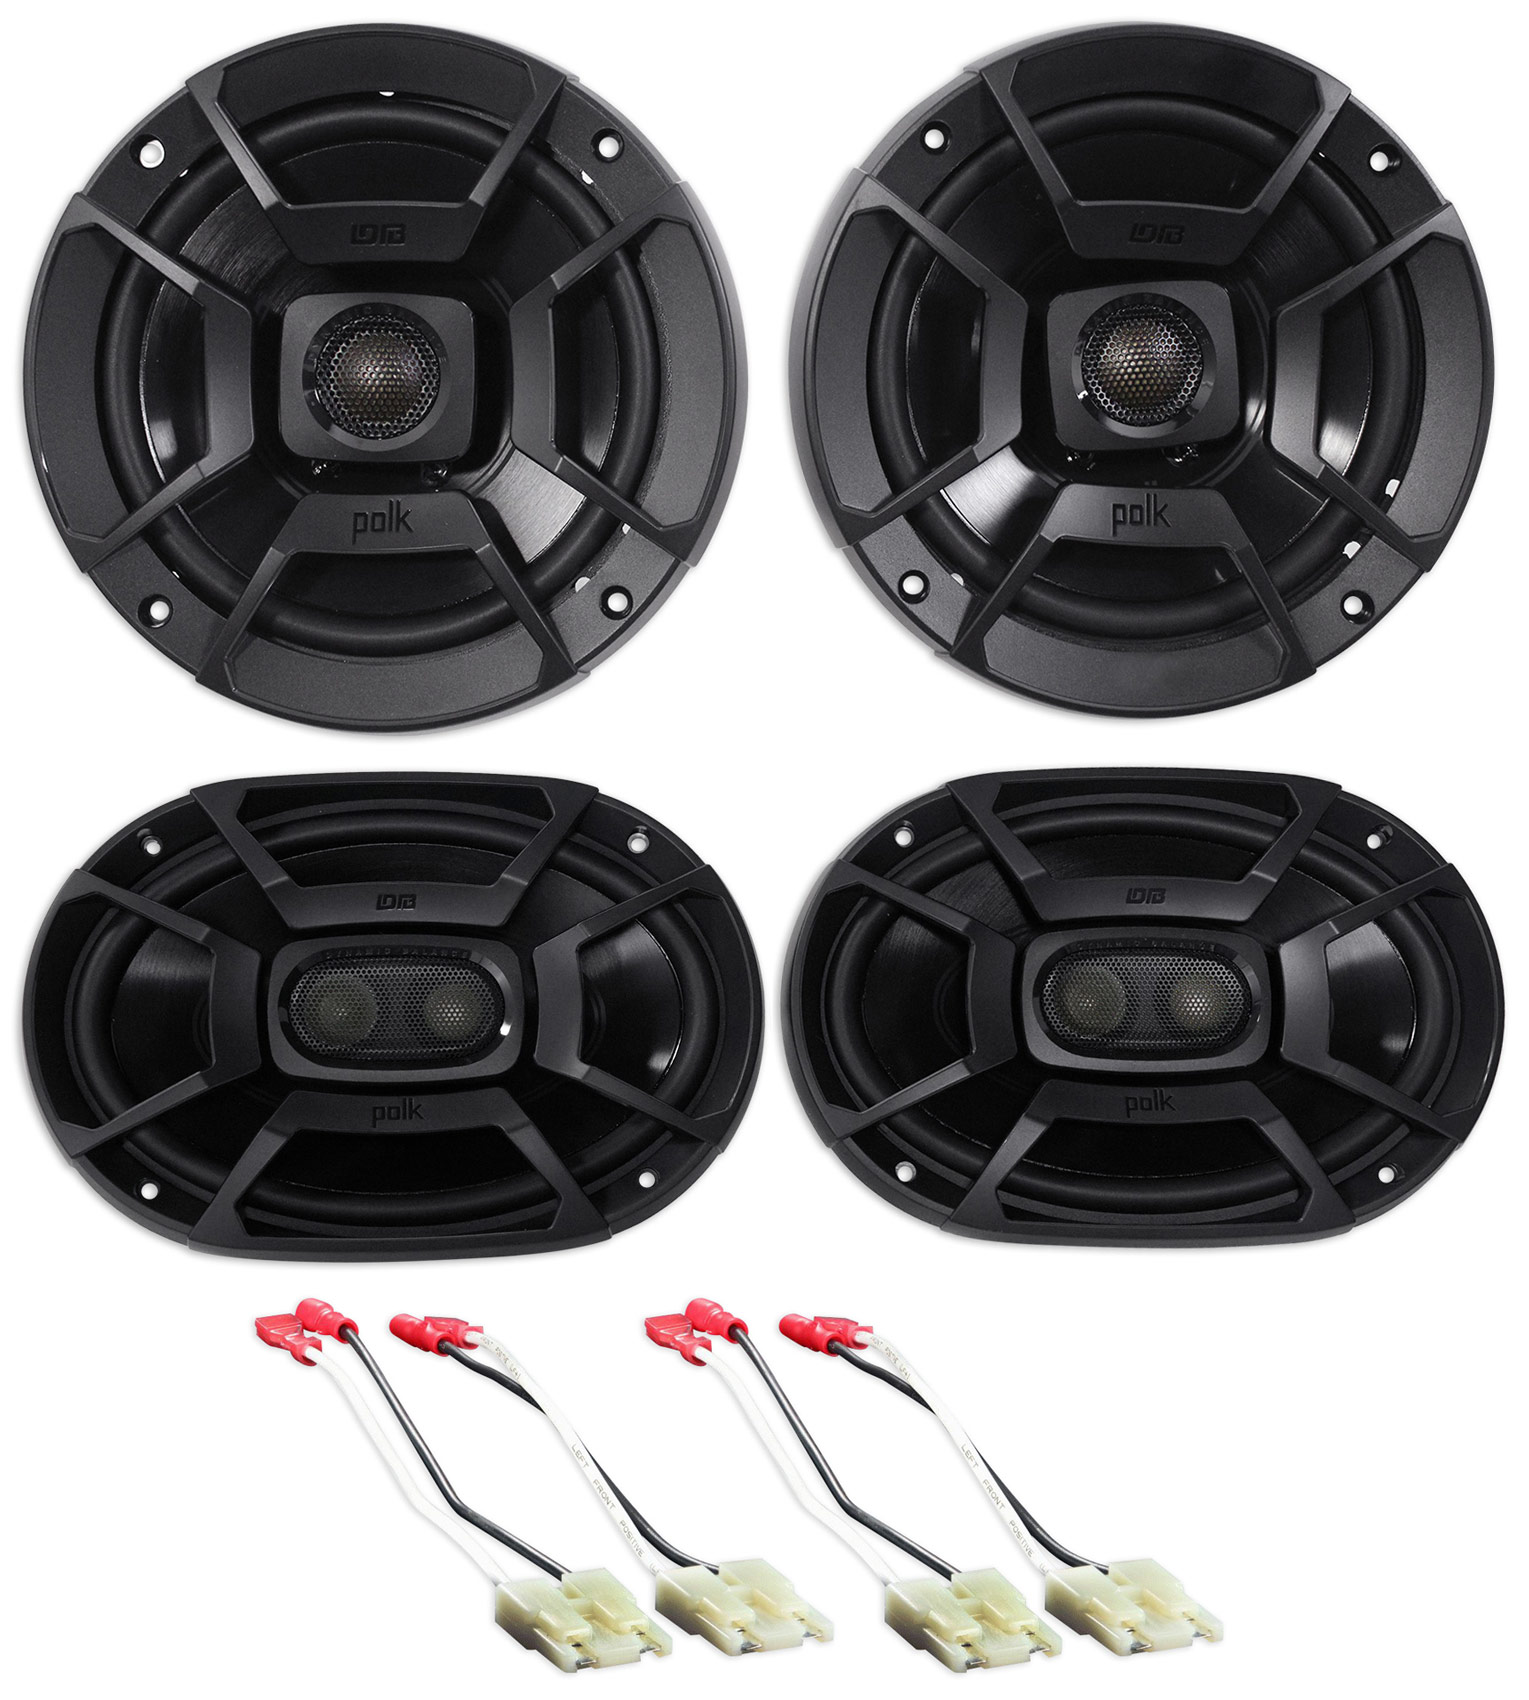 99-04 Jeep Grand Cherokee Polk Audio Front+Rear Factory Speaker Replacement Kit by Polk Audio